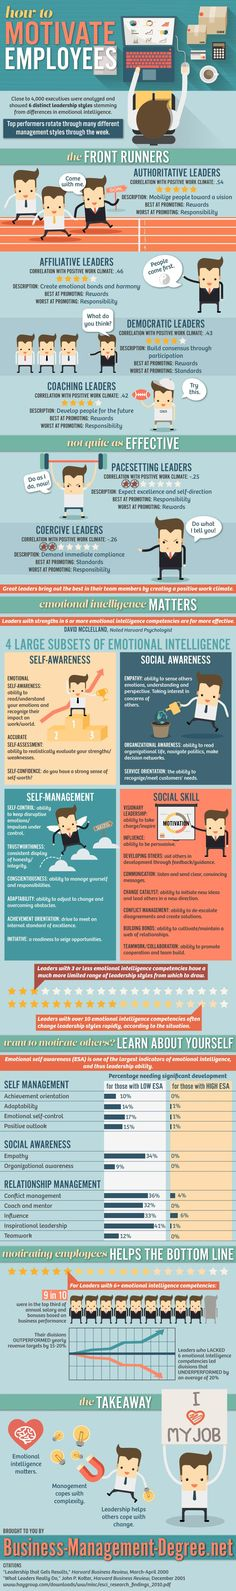 How to Become an Inspirational Leader (Infographic)